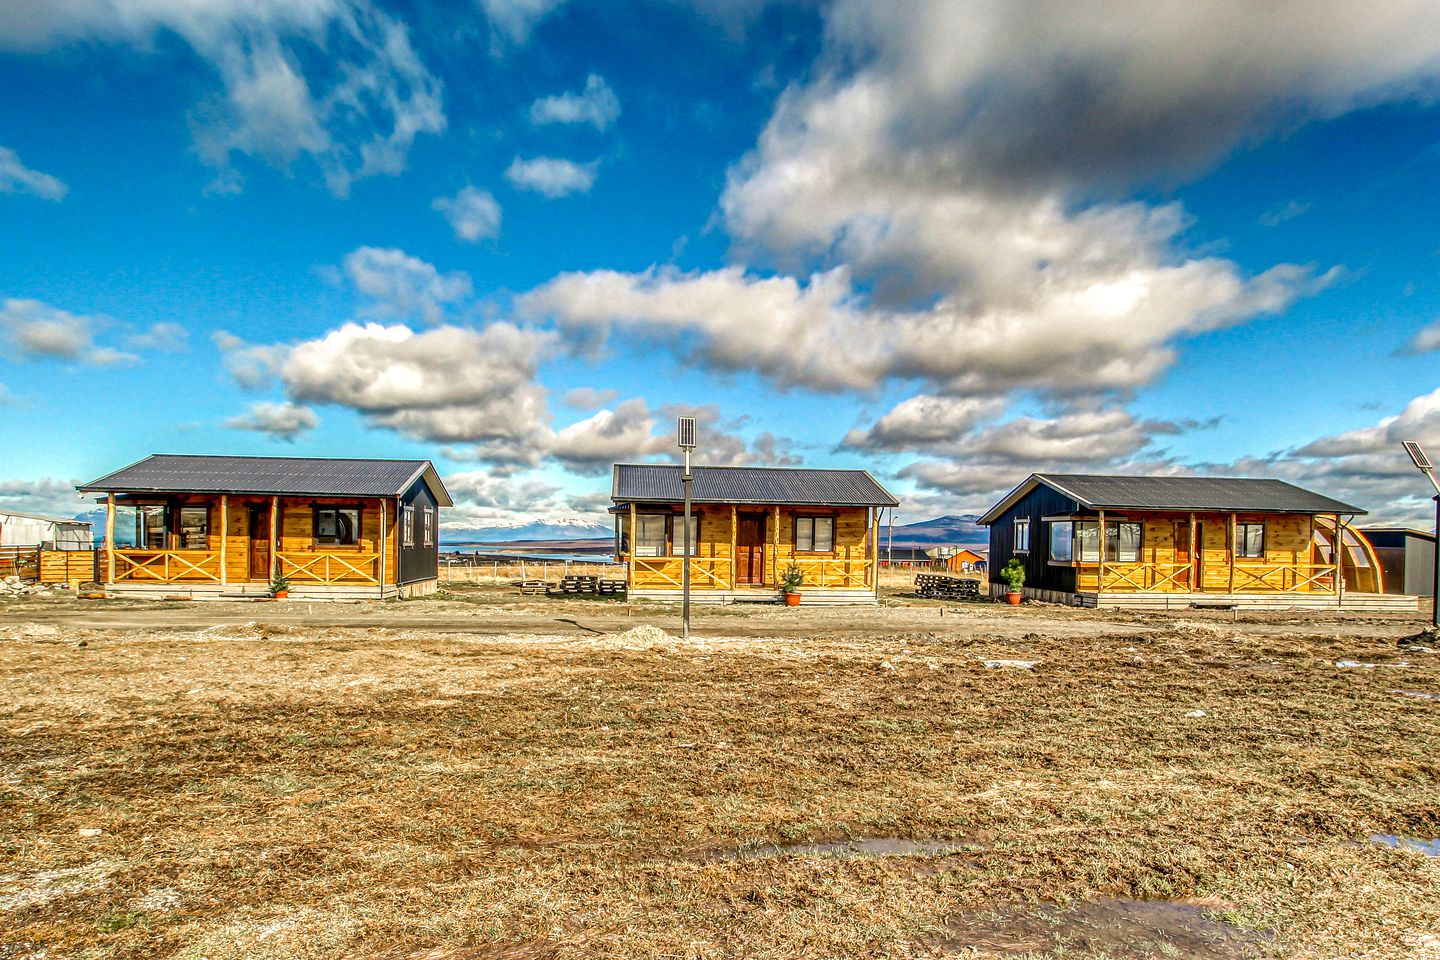 Bungalows (Magallanes, Chile)